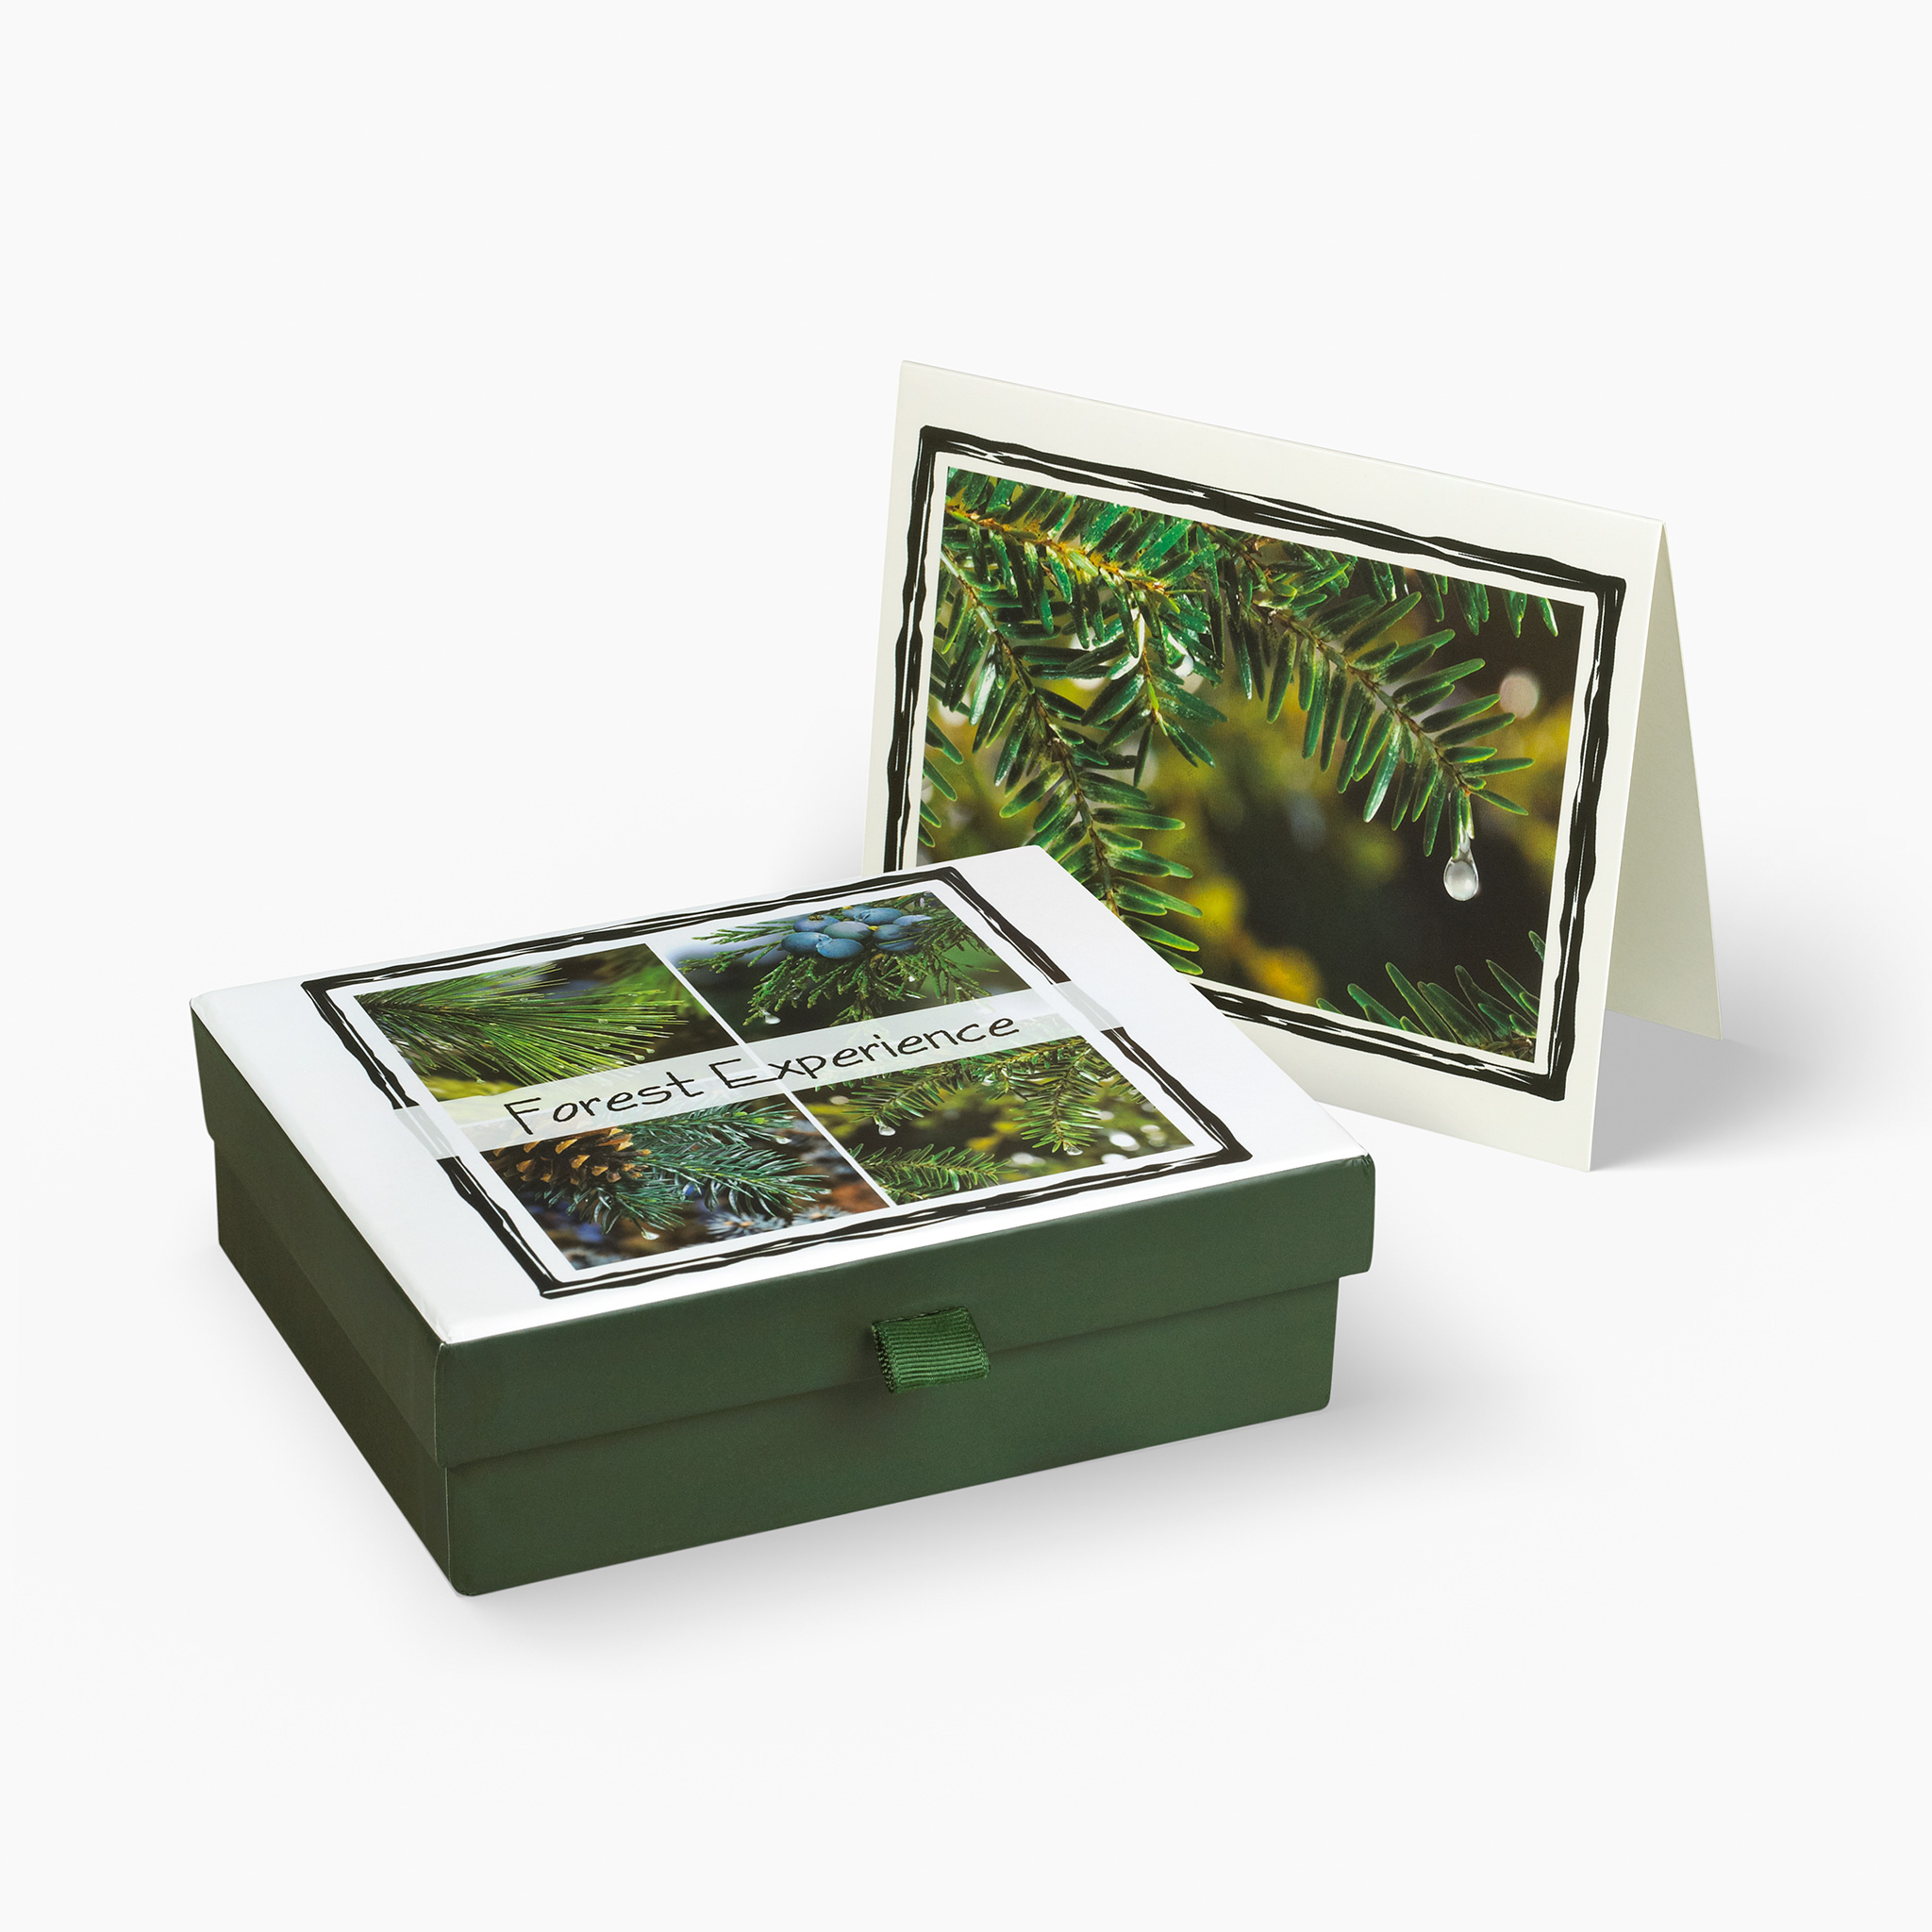 Nabila K's Forest Experience Card and Envelope Stationary with a box holding the cardss